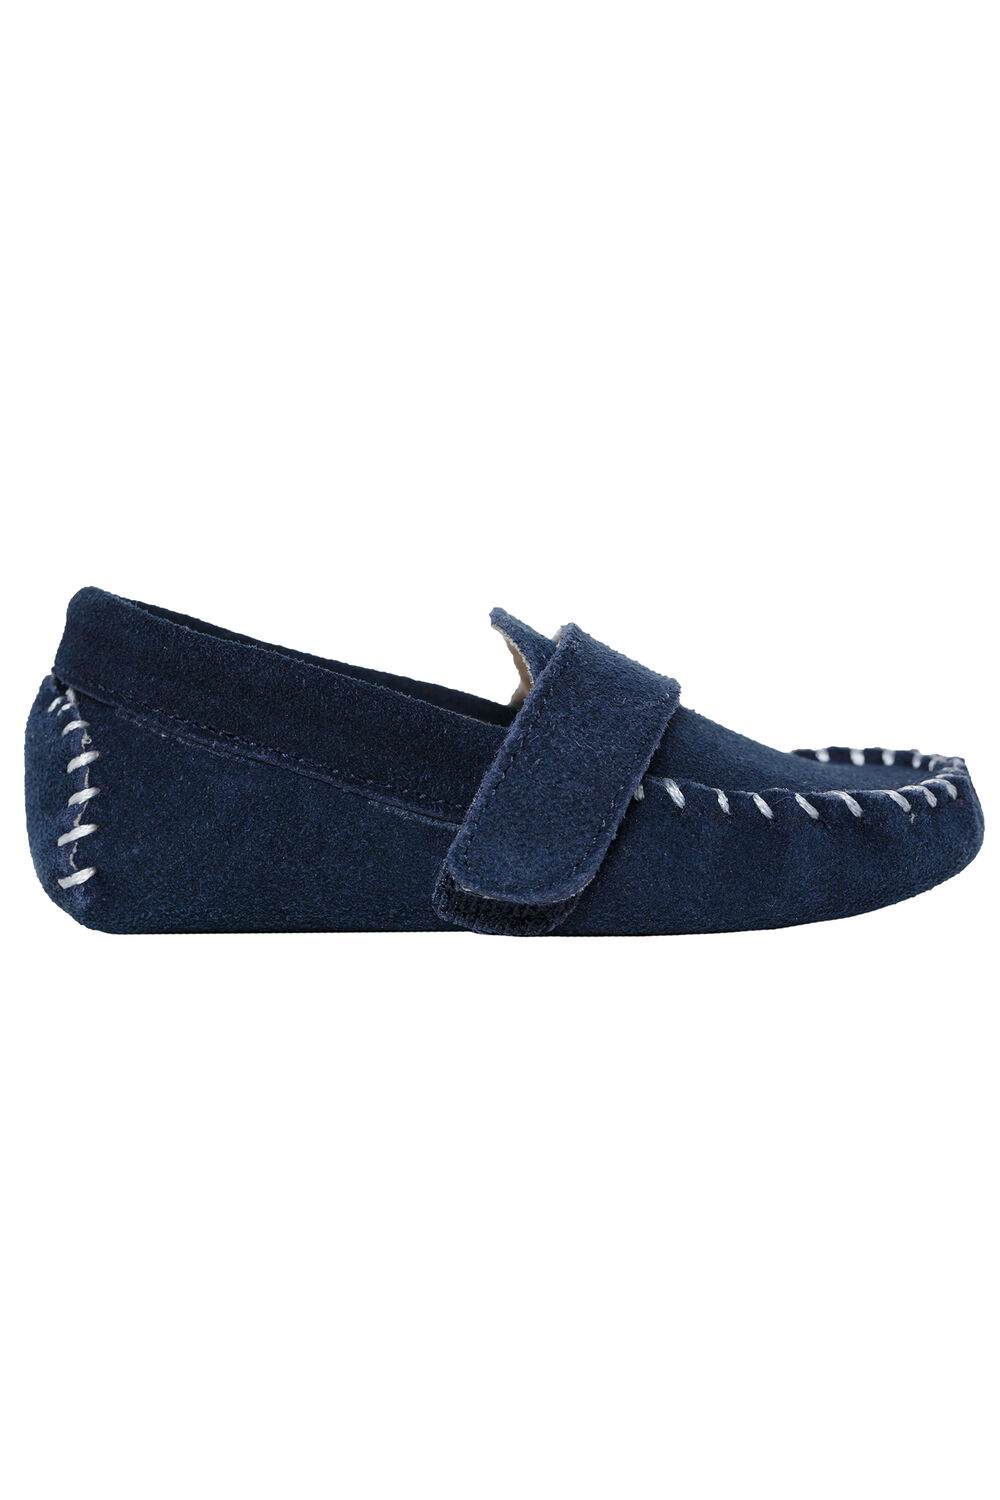 BENNY LOAFER SHOE in colour BLACK IRIS